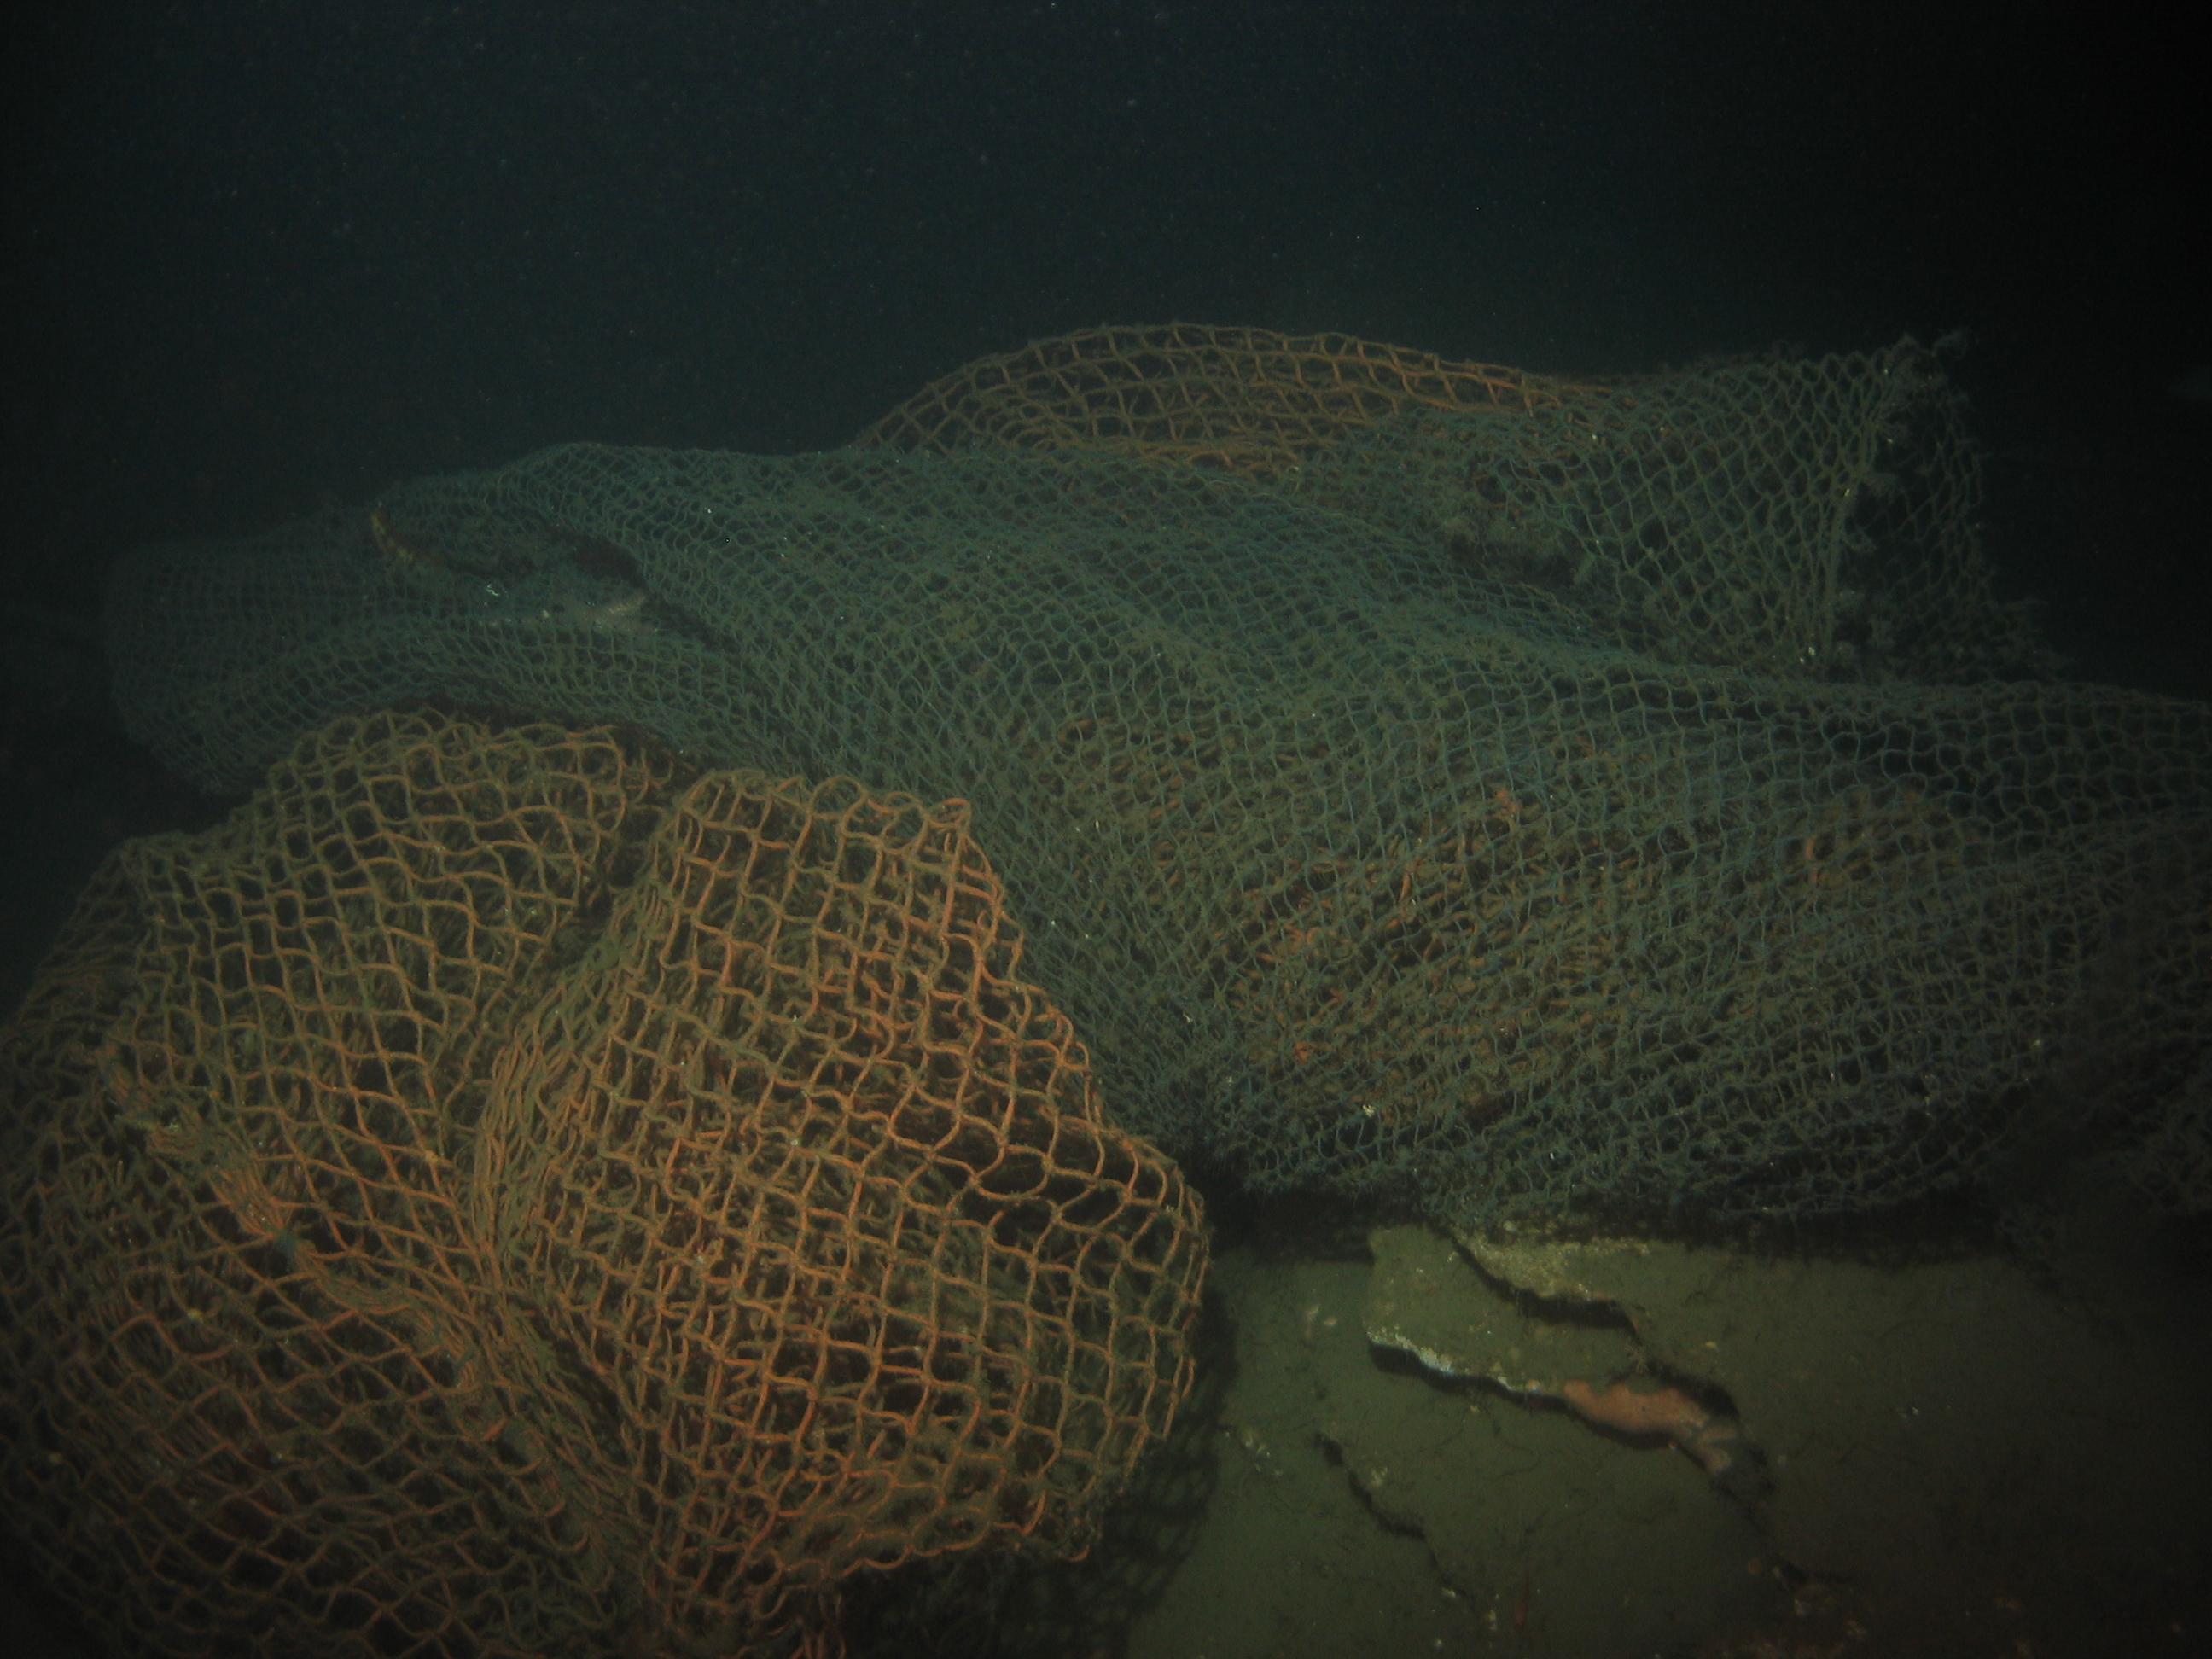 A large abandoned seine net was found off of Portuguese Ledge SMCA.